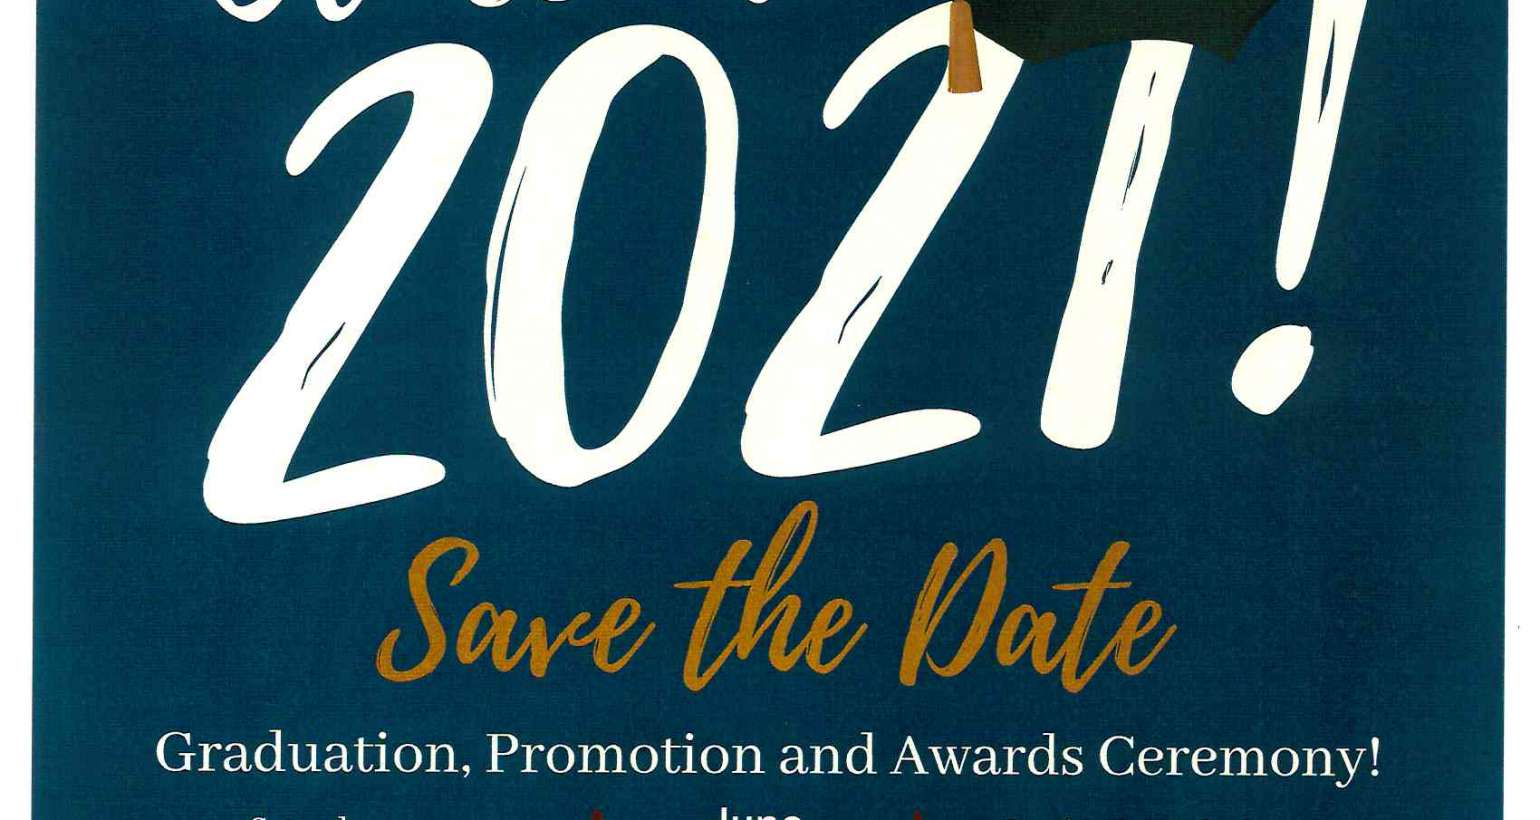 2020-2021 Graduation, Promotion and Awards Ceremony!